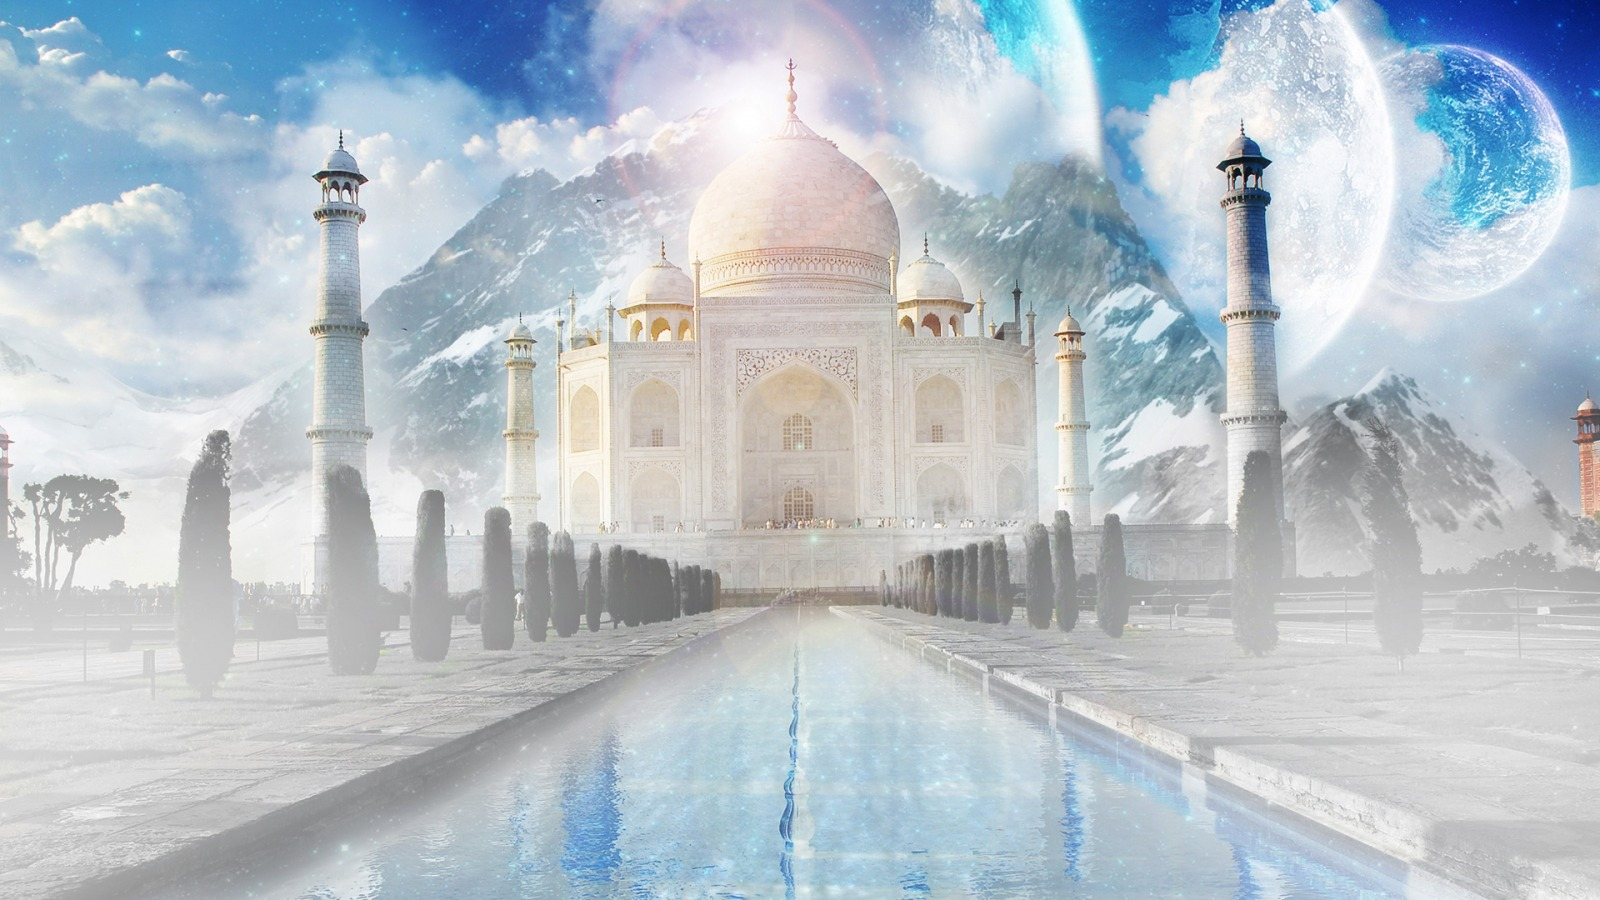 The taj mahal wallpaper india world wallpapers in jpg for Wallpapers for house wall in india